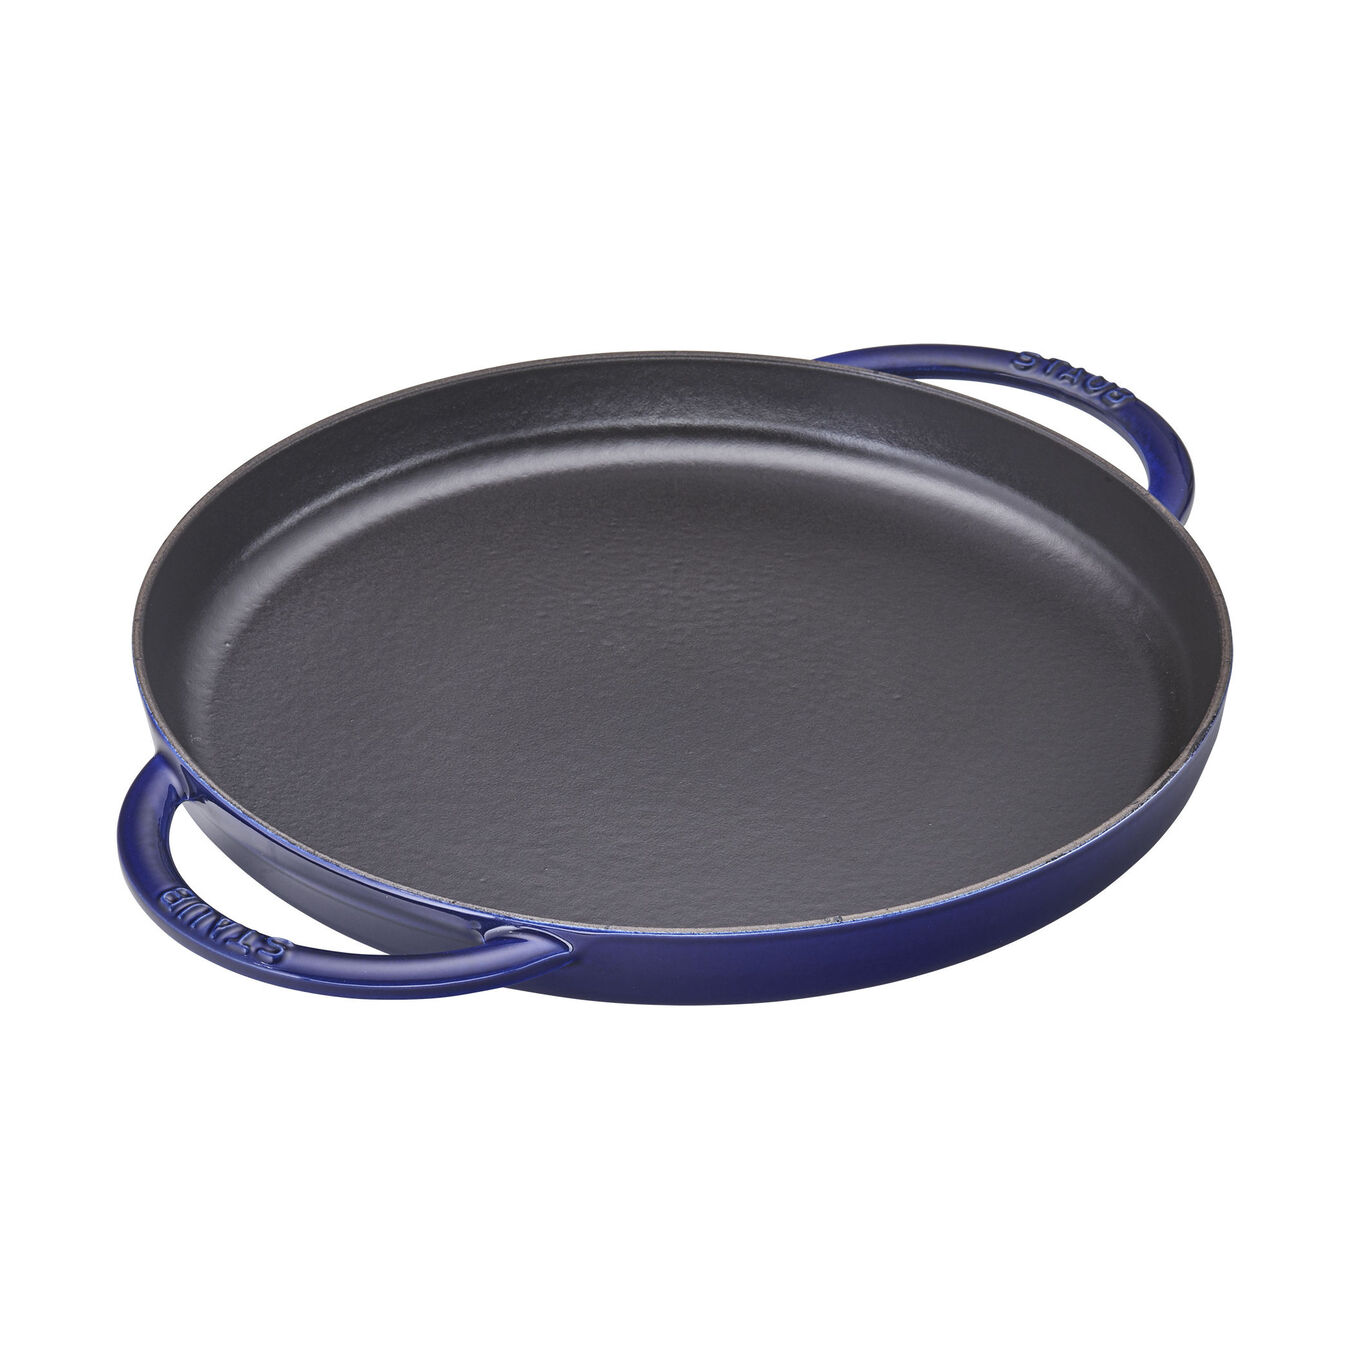 30 cm Cast iron Griddle, dark-blue - Visual Imperfections,,large 1